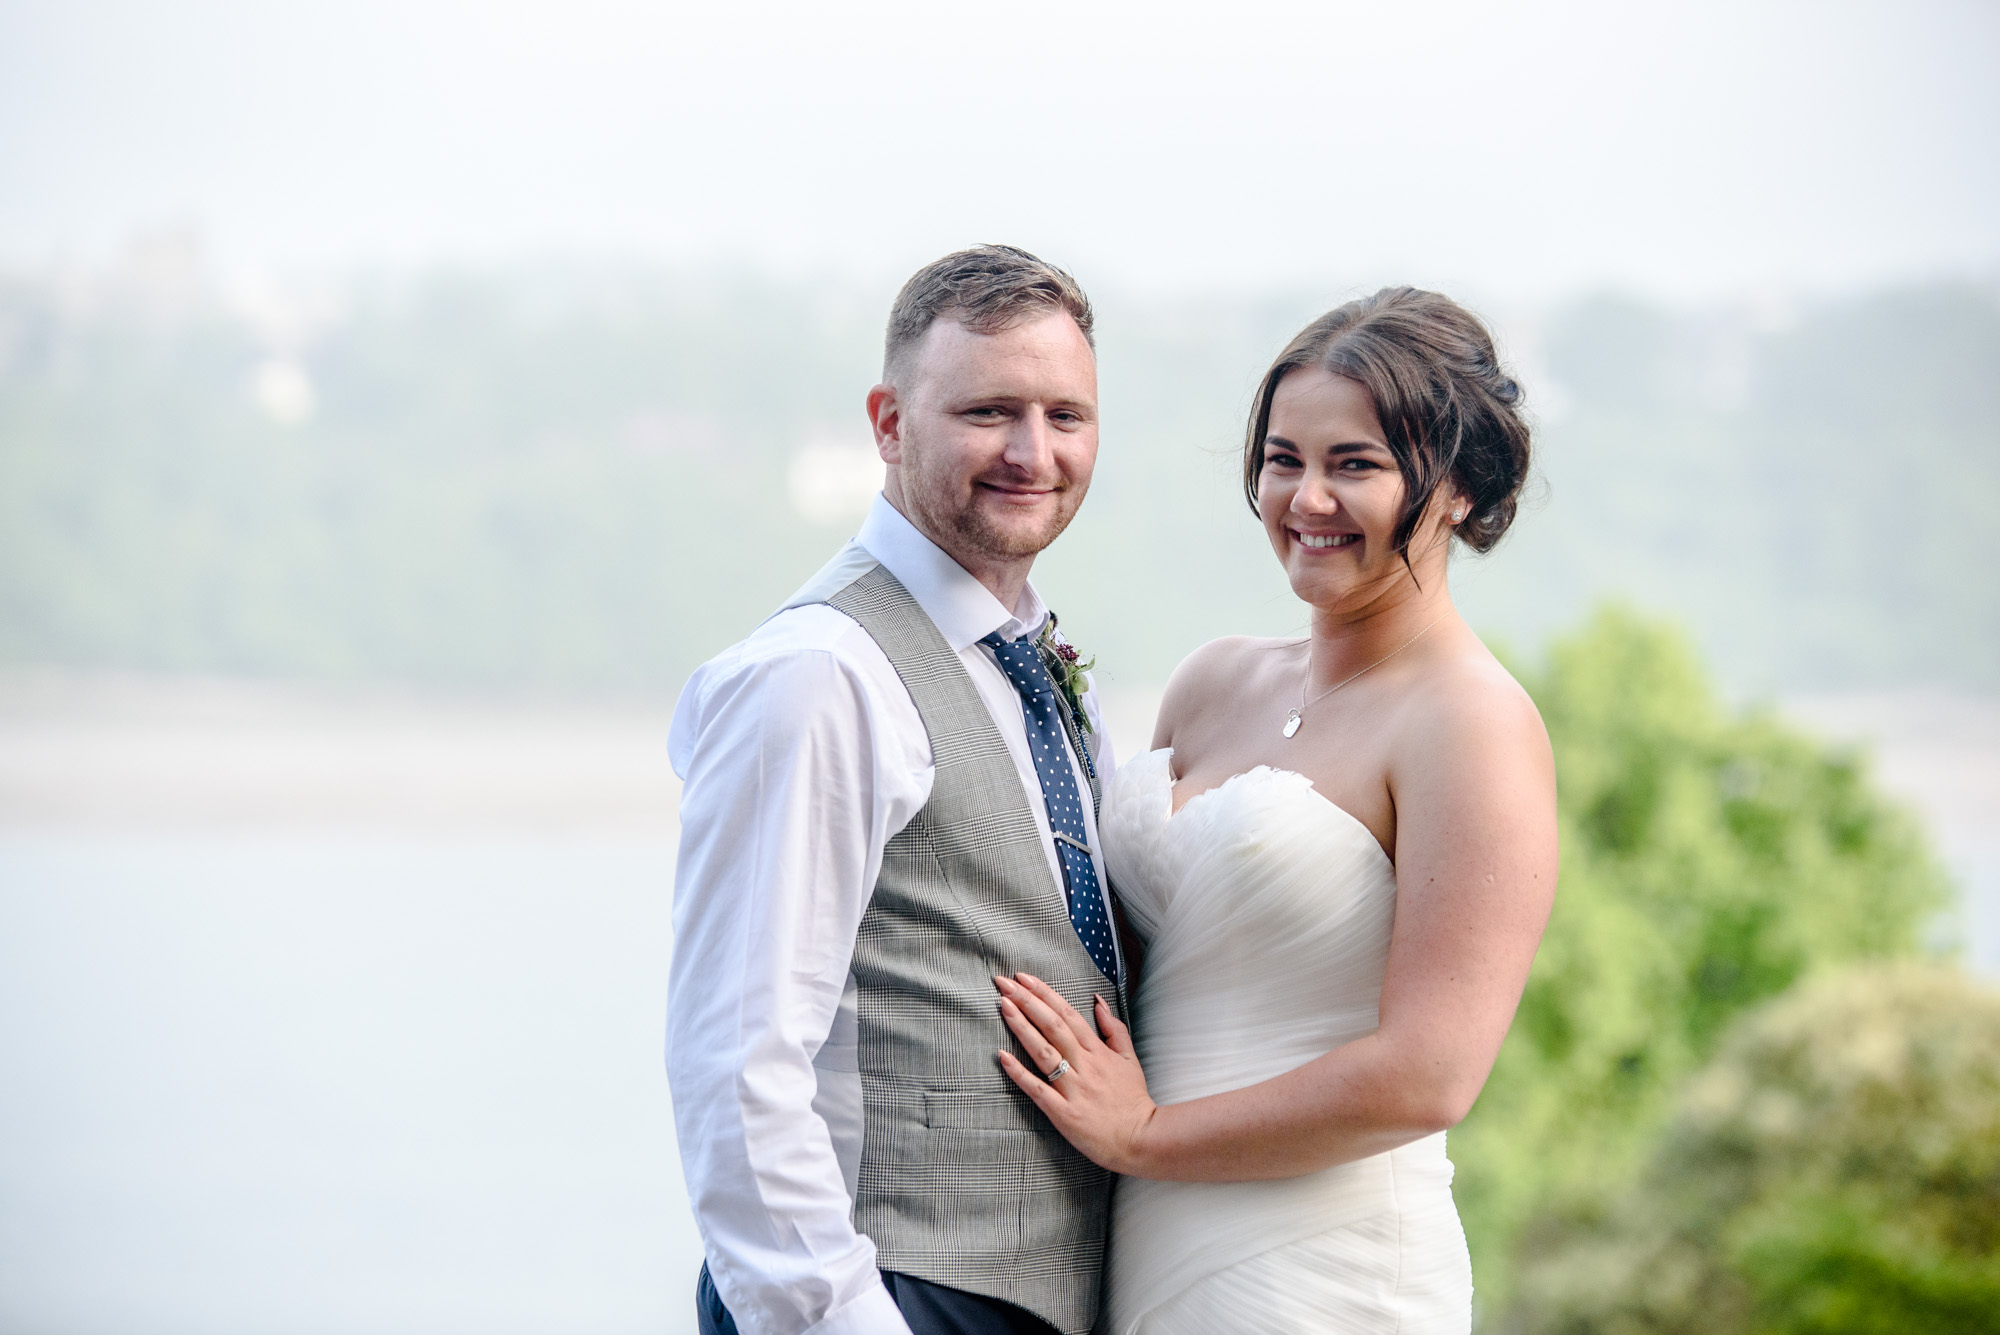 Bride and groom portrait at Chateau Rhianfa